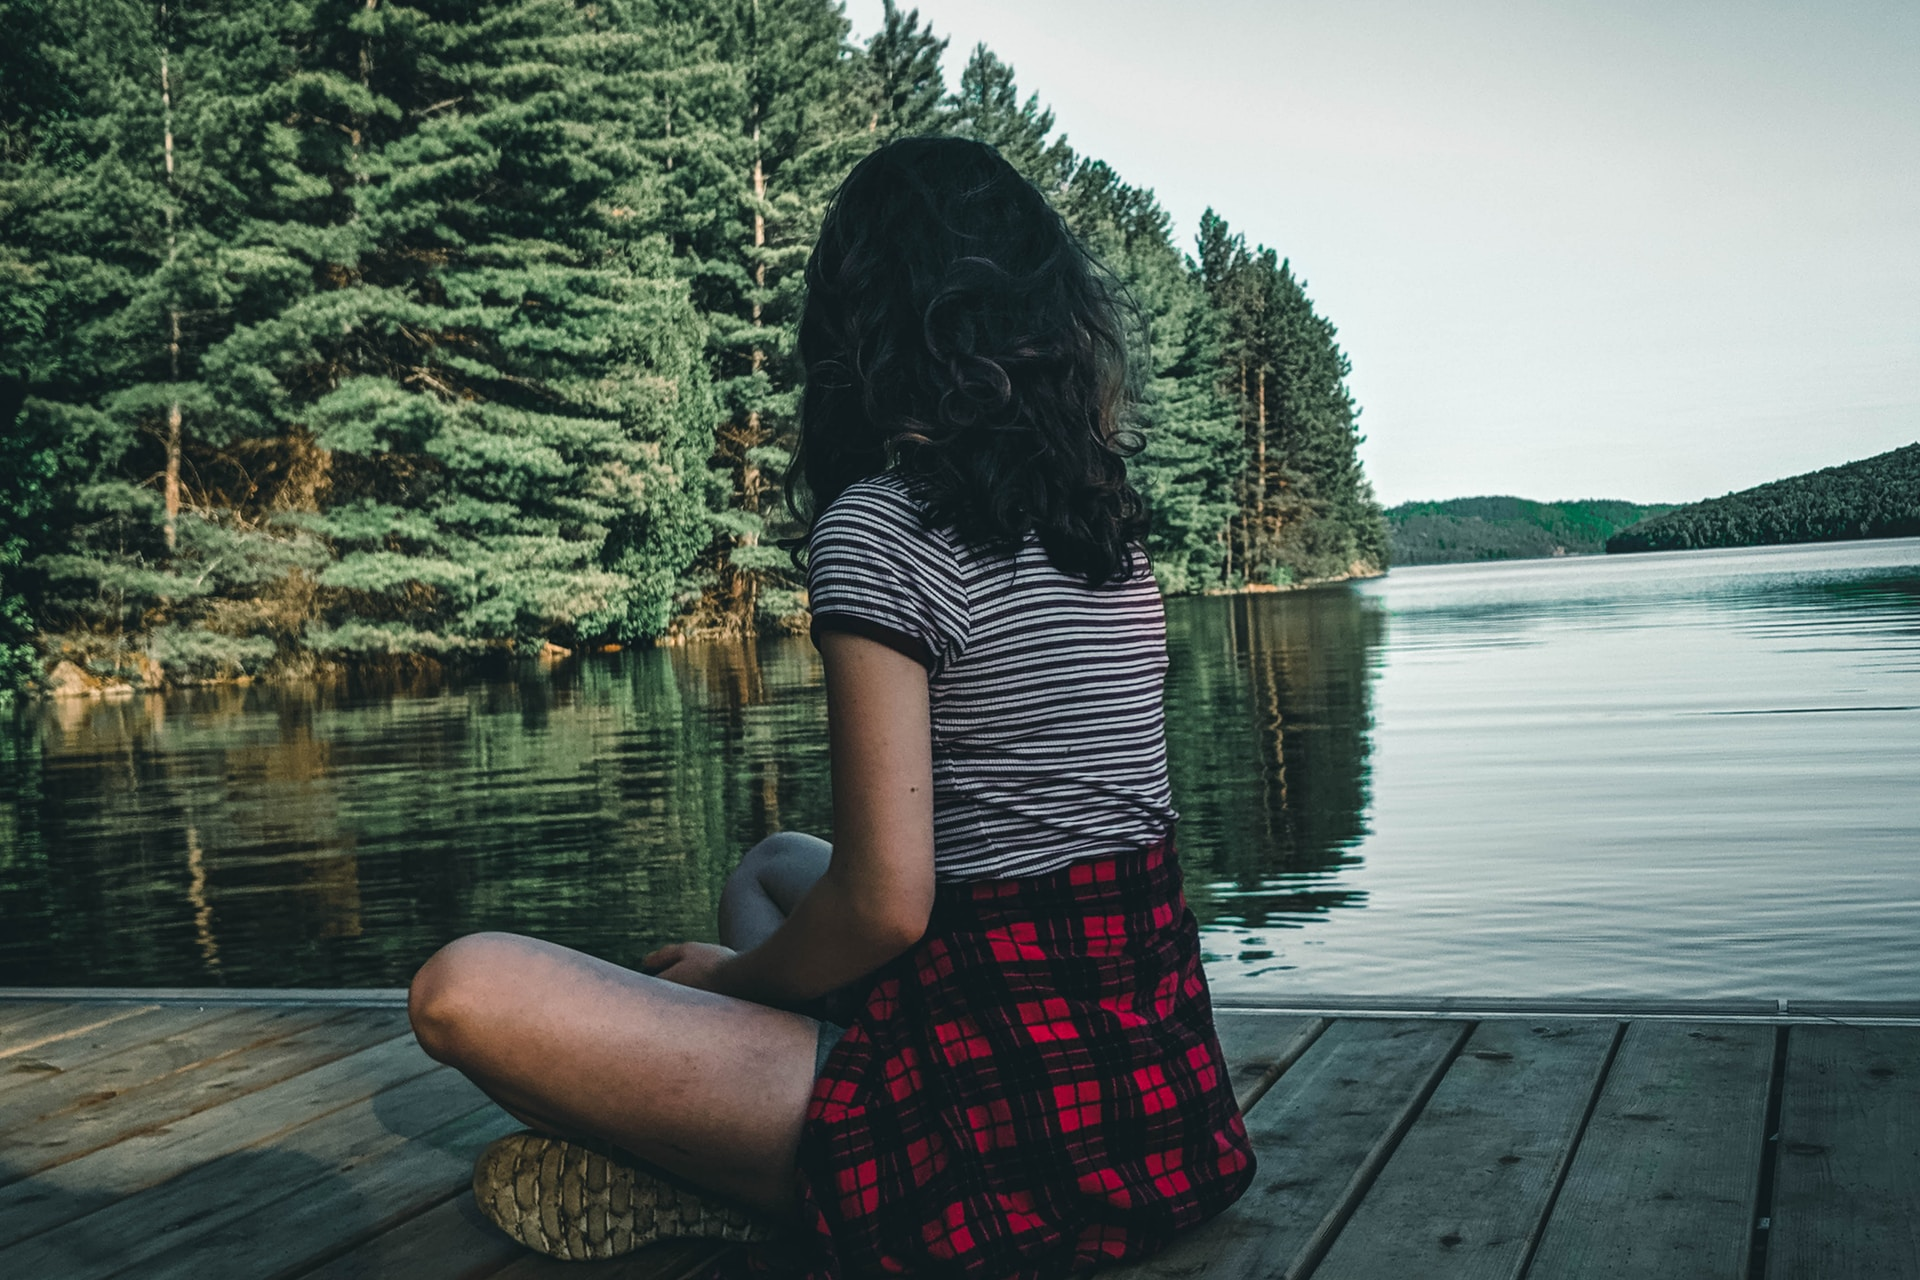 woman in black and white striped shirt sitting on dock during daytime